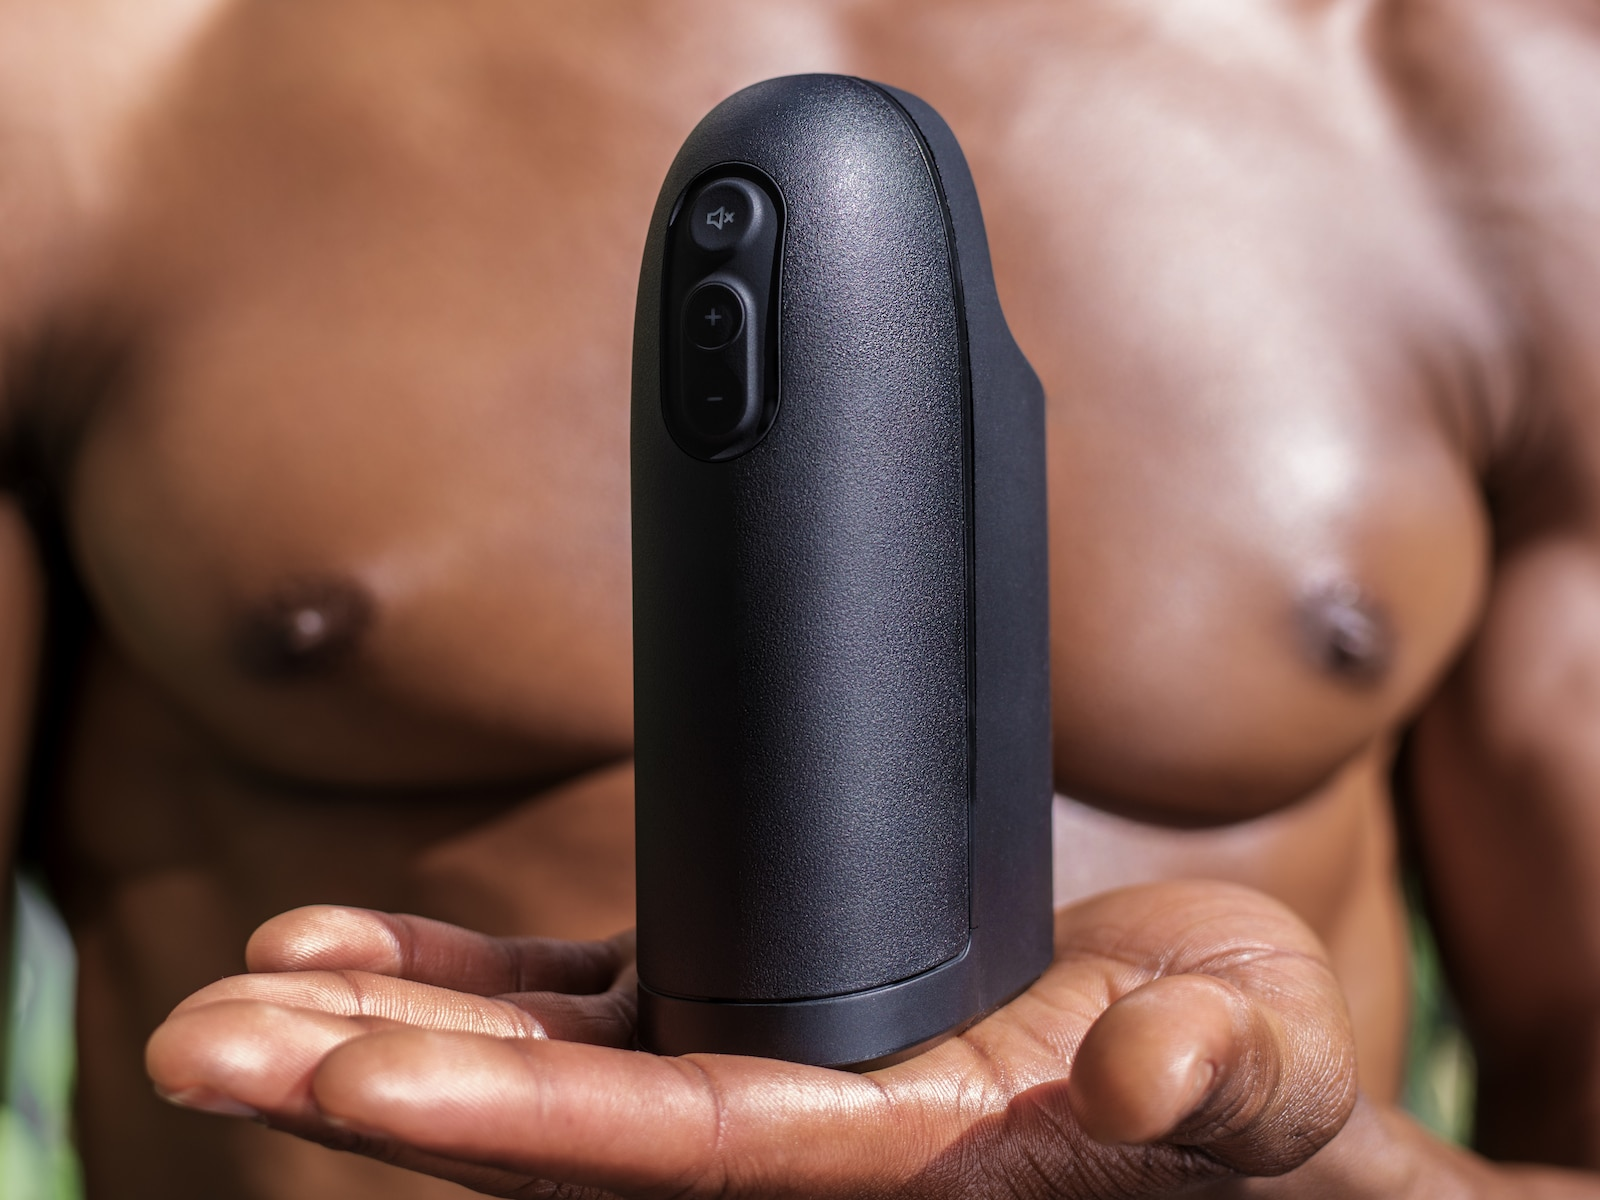 male sex toy